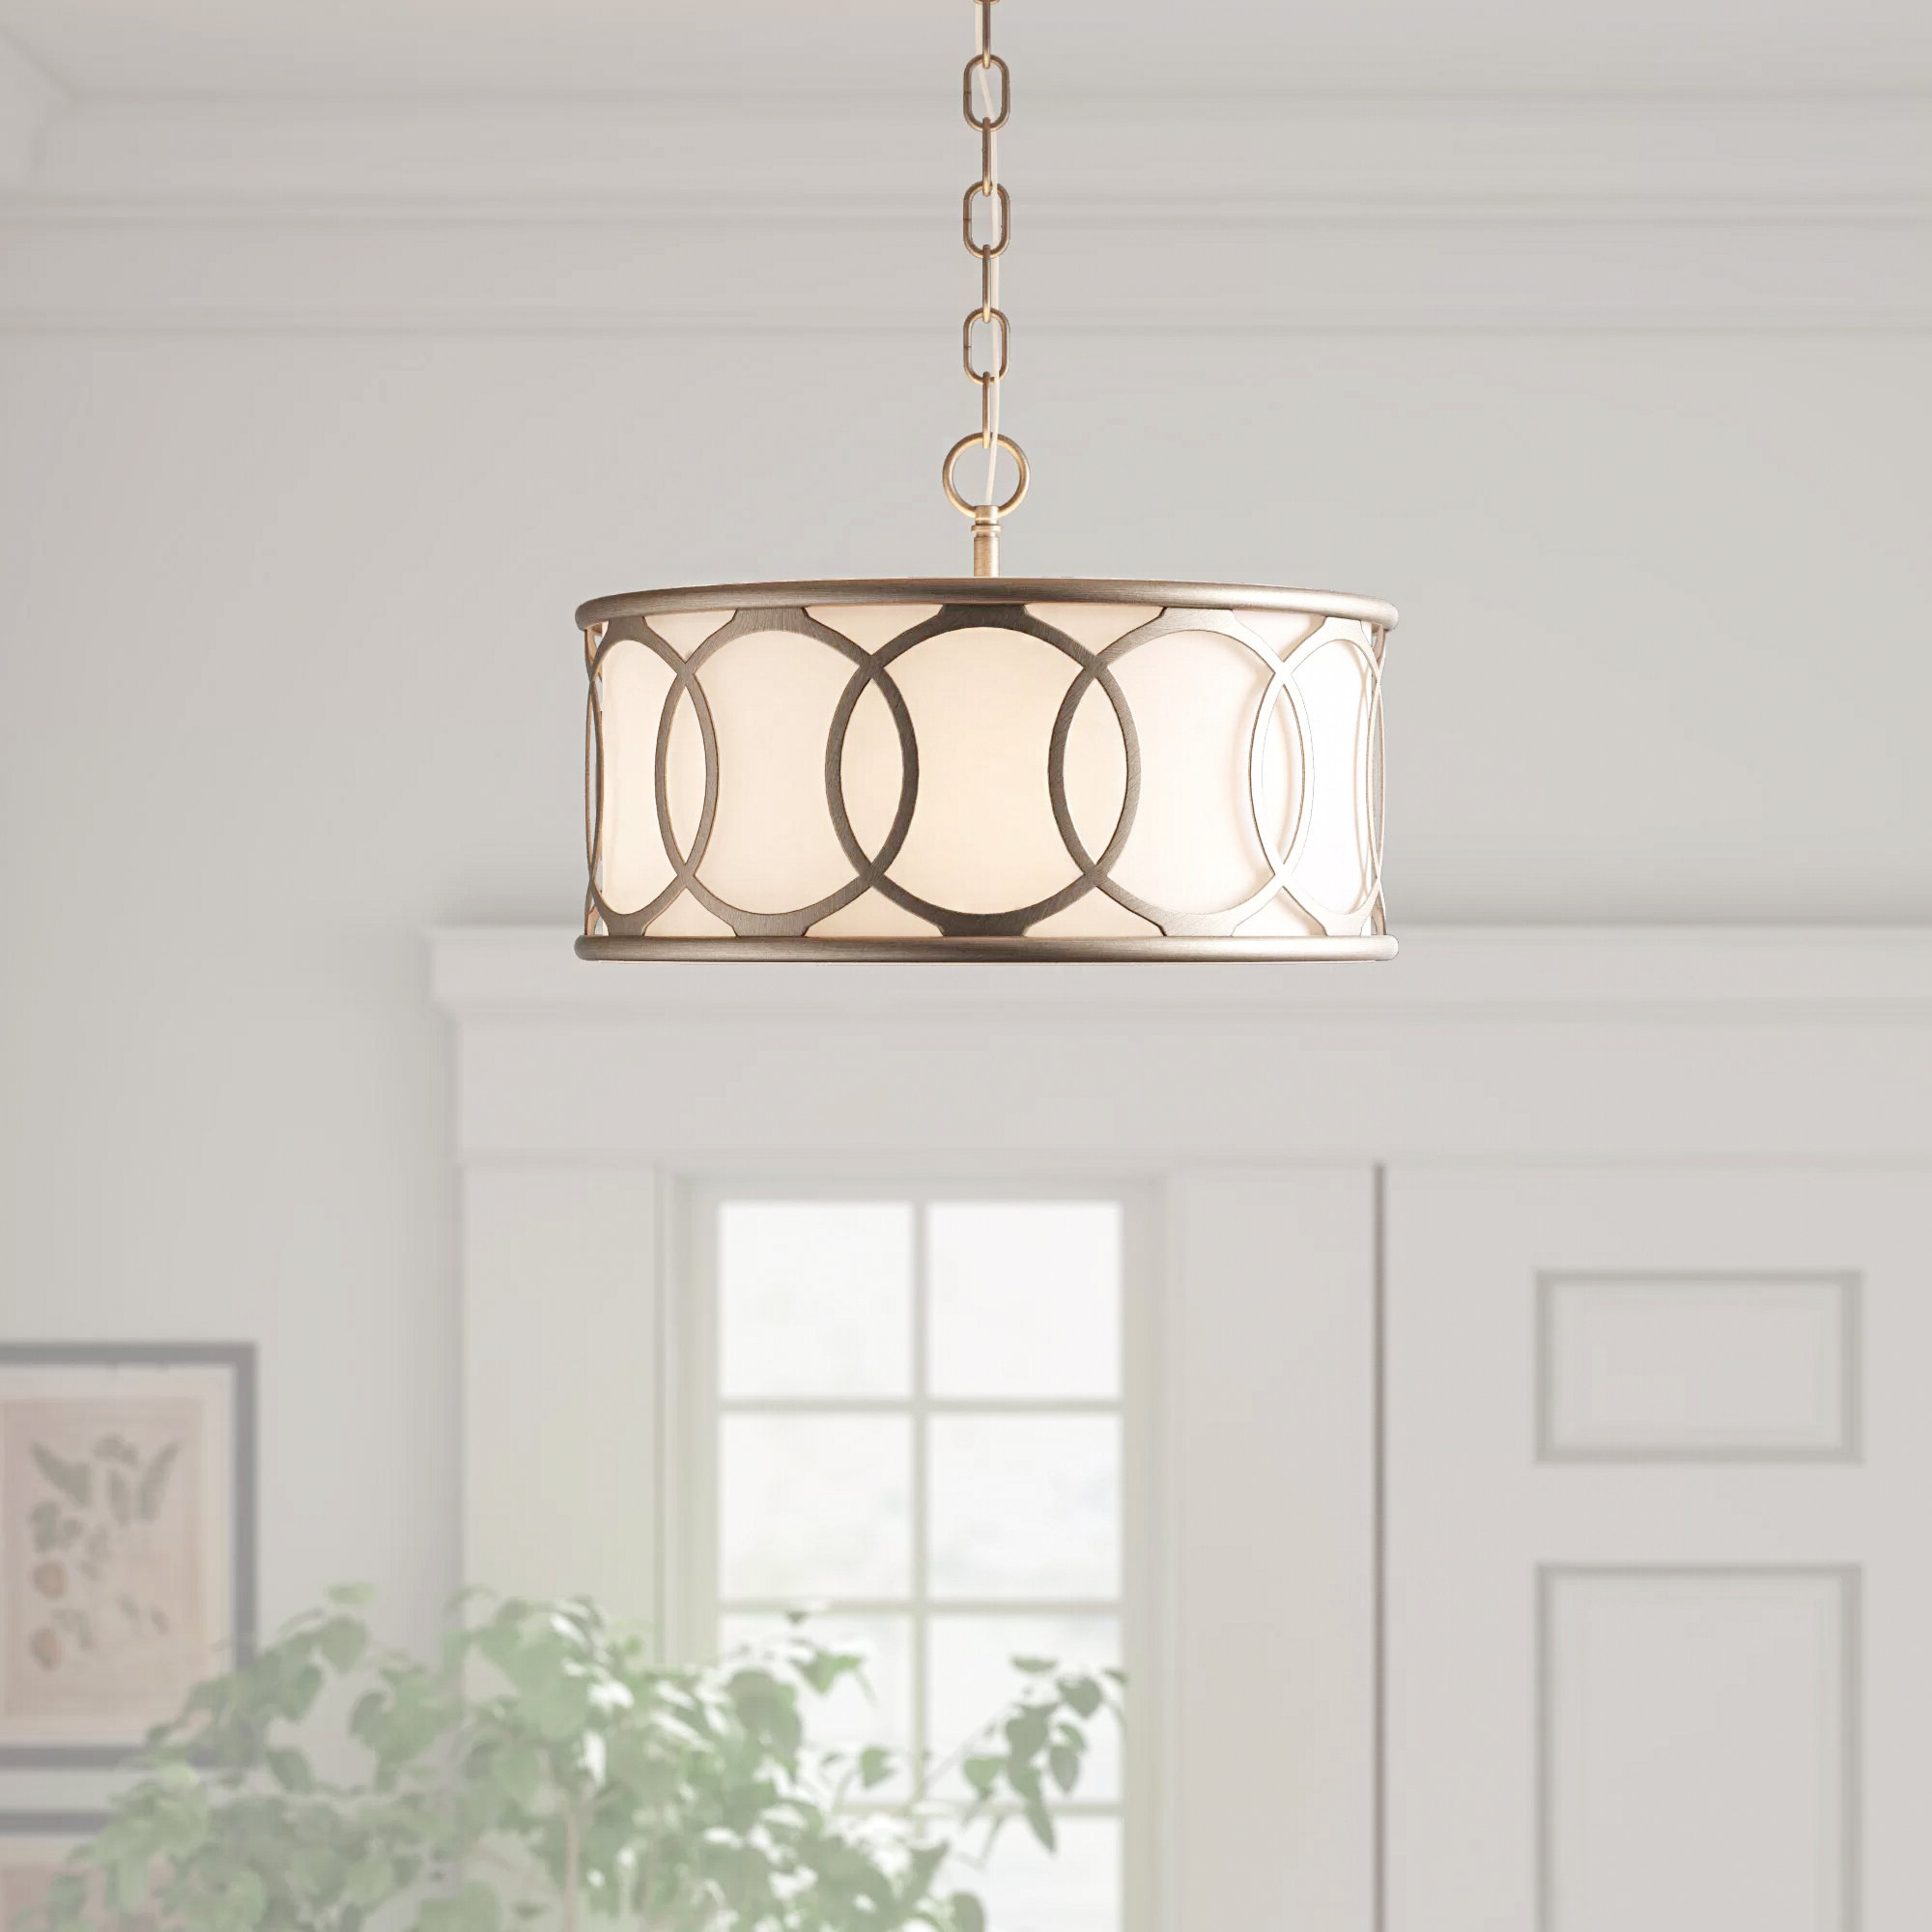 Townsend 3 Light Chandelier Pertaining To 2020 Tadwick 3 Light Single Drum Chandeliers (View 7 of 25)